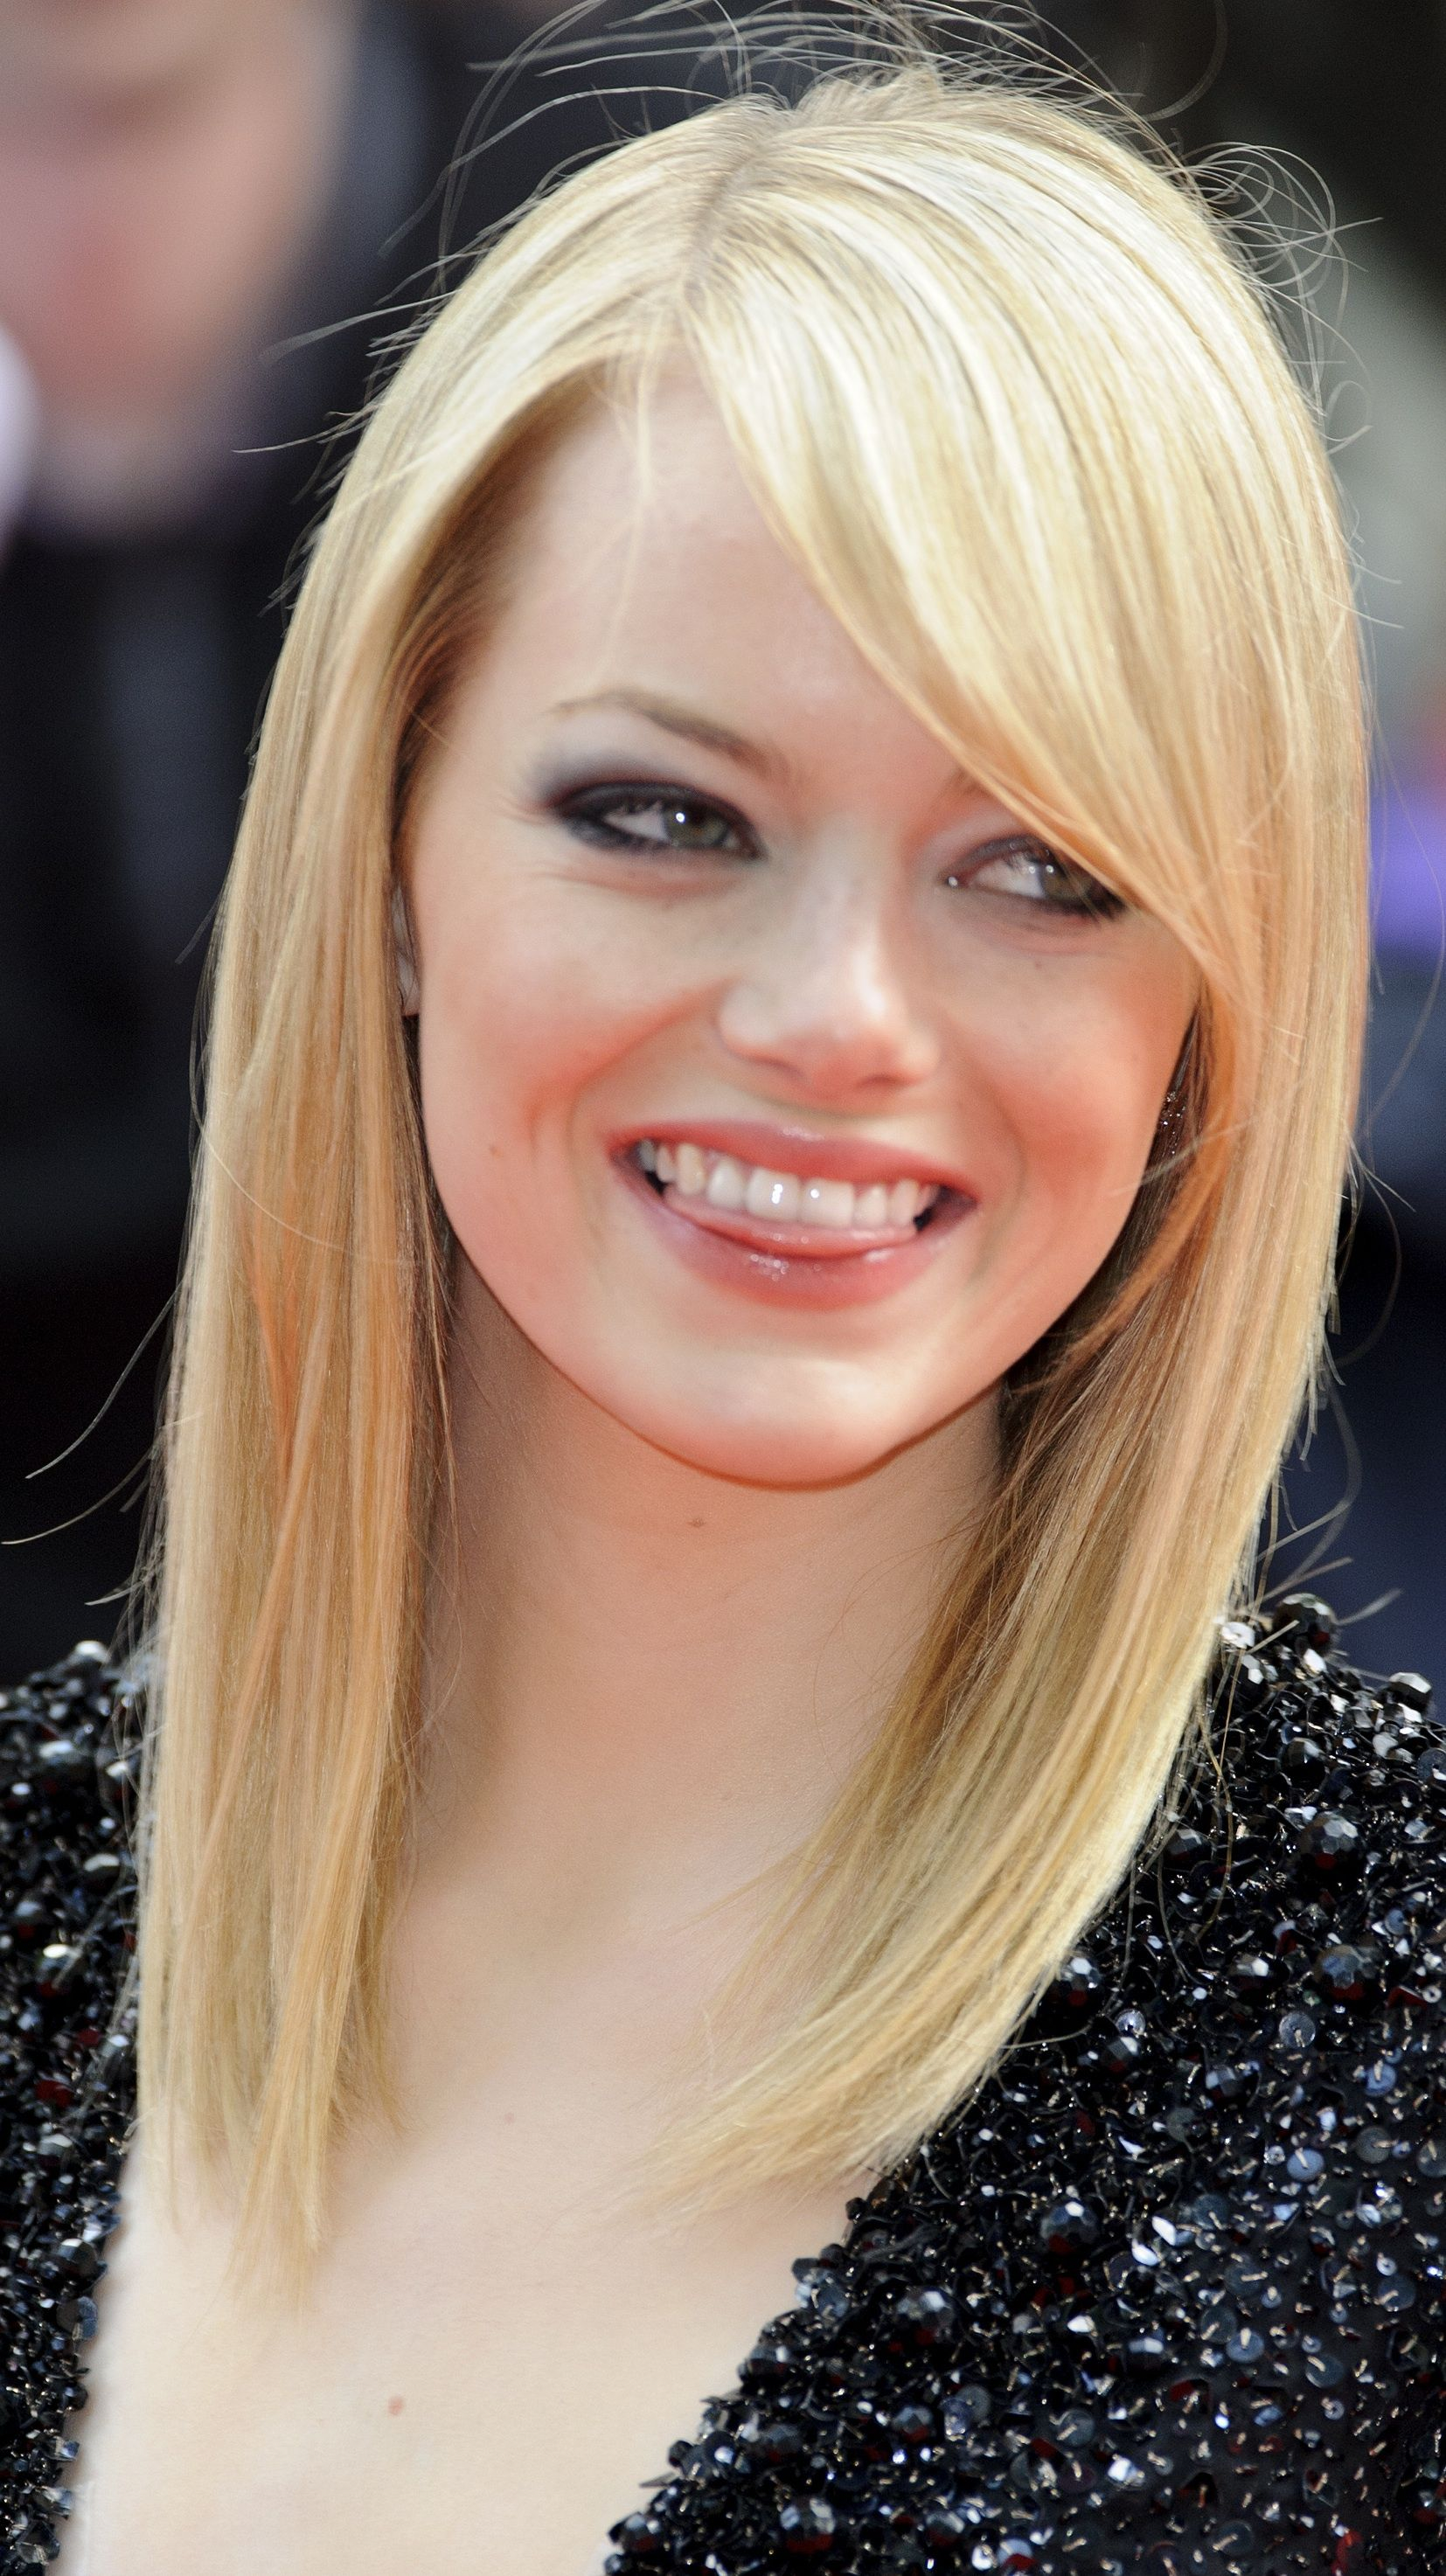 Hairstyle According To My Face The Best Bang Hairstyles For Your Face Shape Haircuts With Bangs